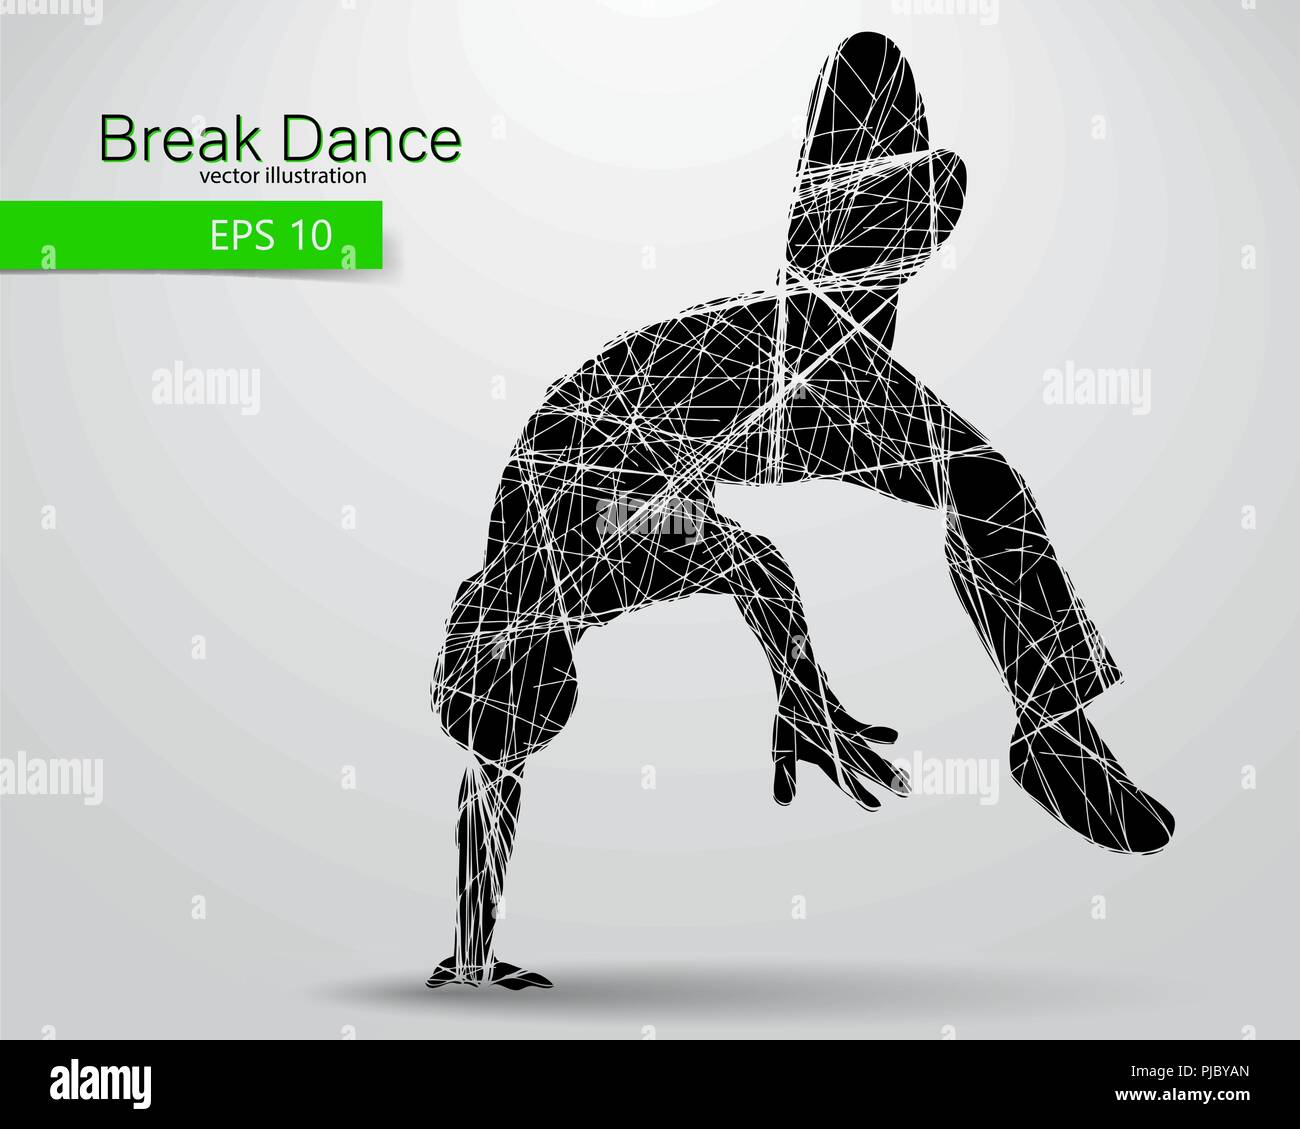 Silhouette of a break dancer. Background and text on a separate layer, color can be changed in one click. - Stock Vector